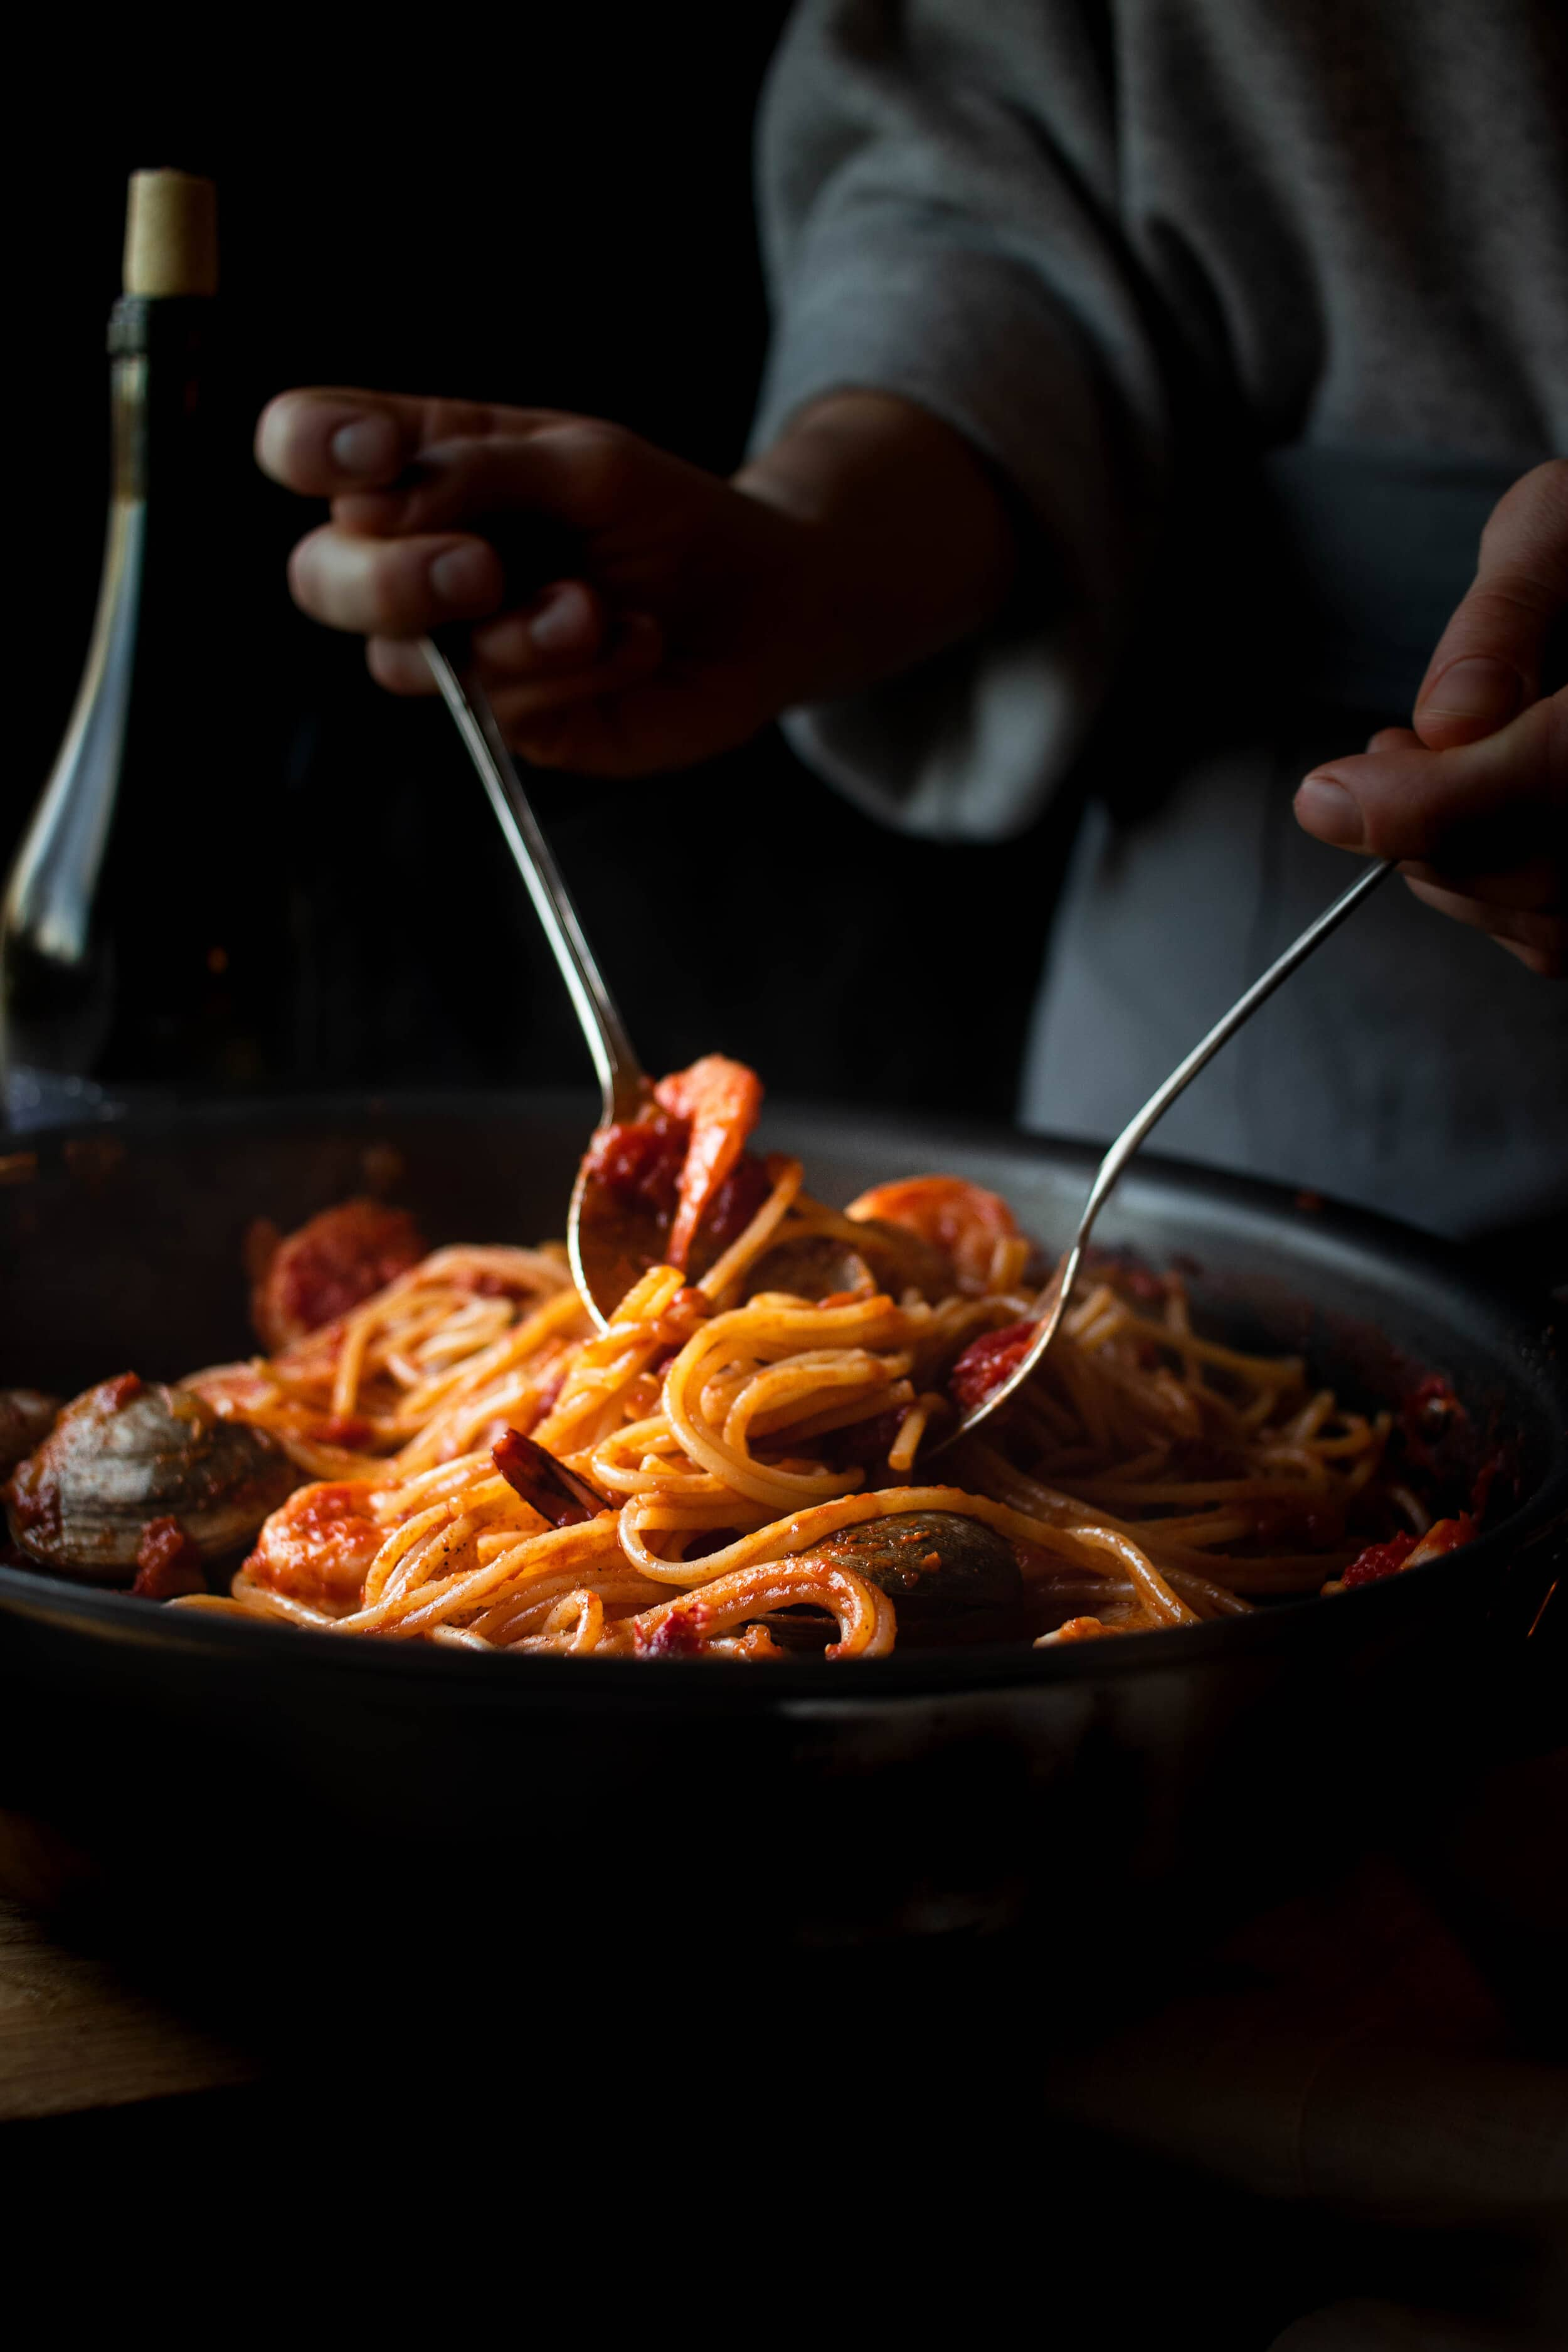 tomato seafood pasta with hands edited-2.jpg